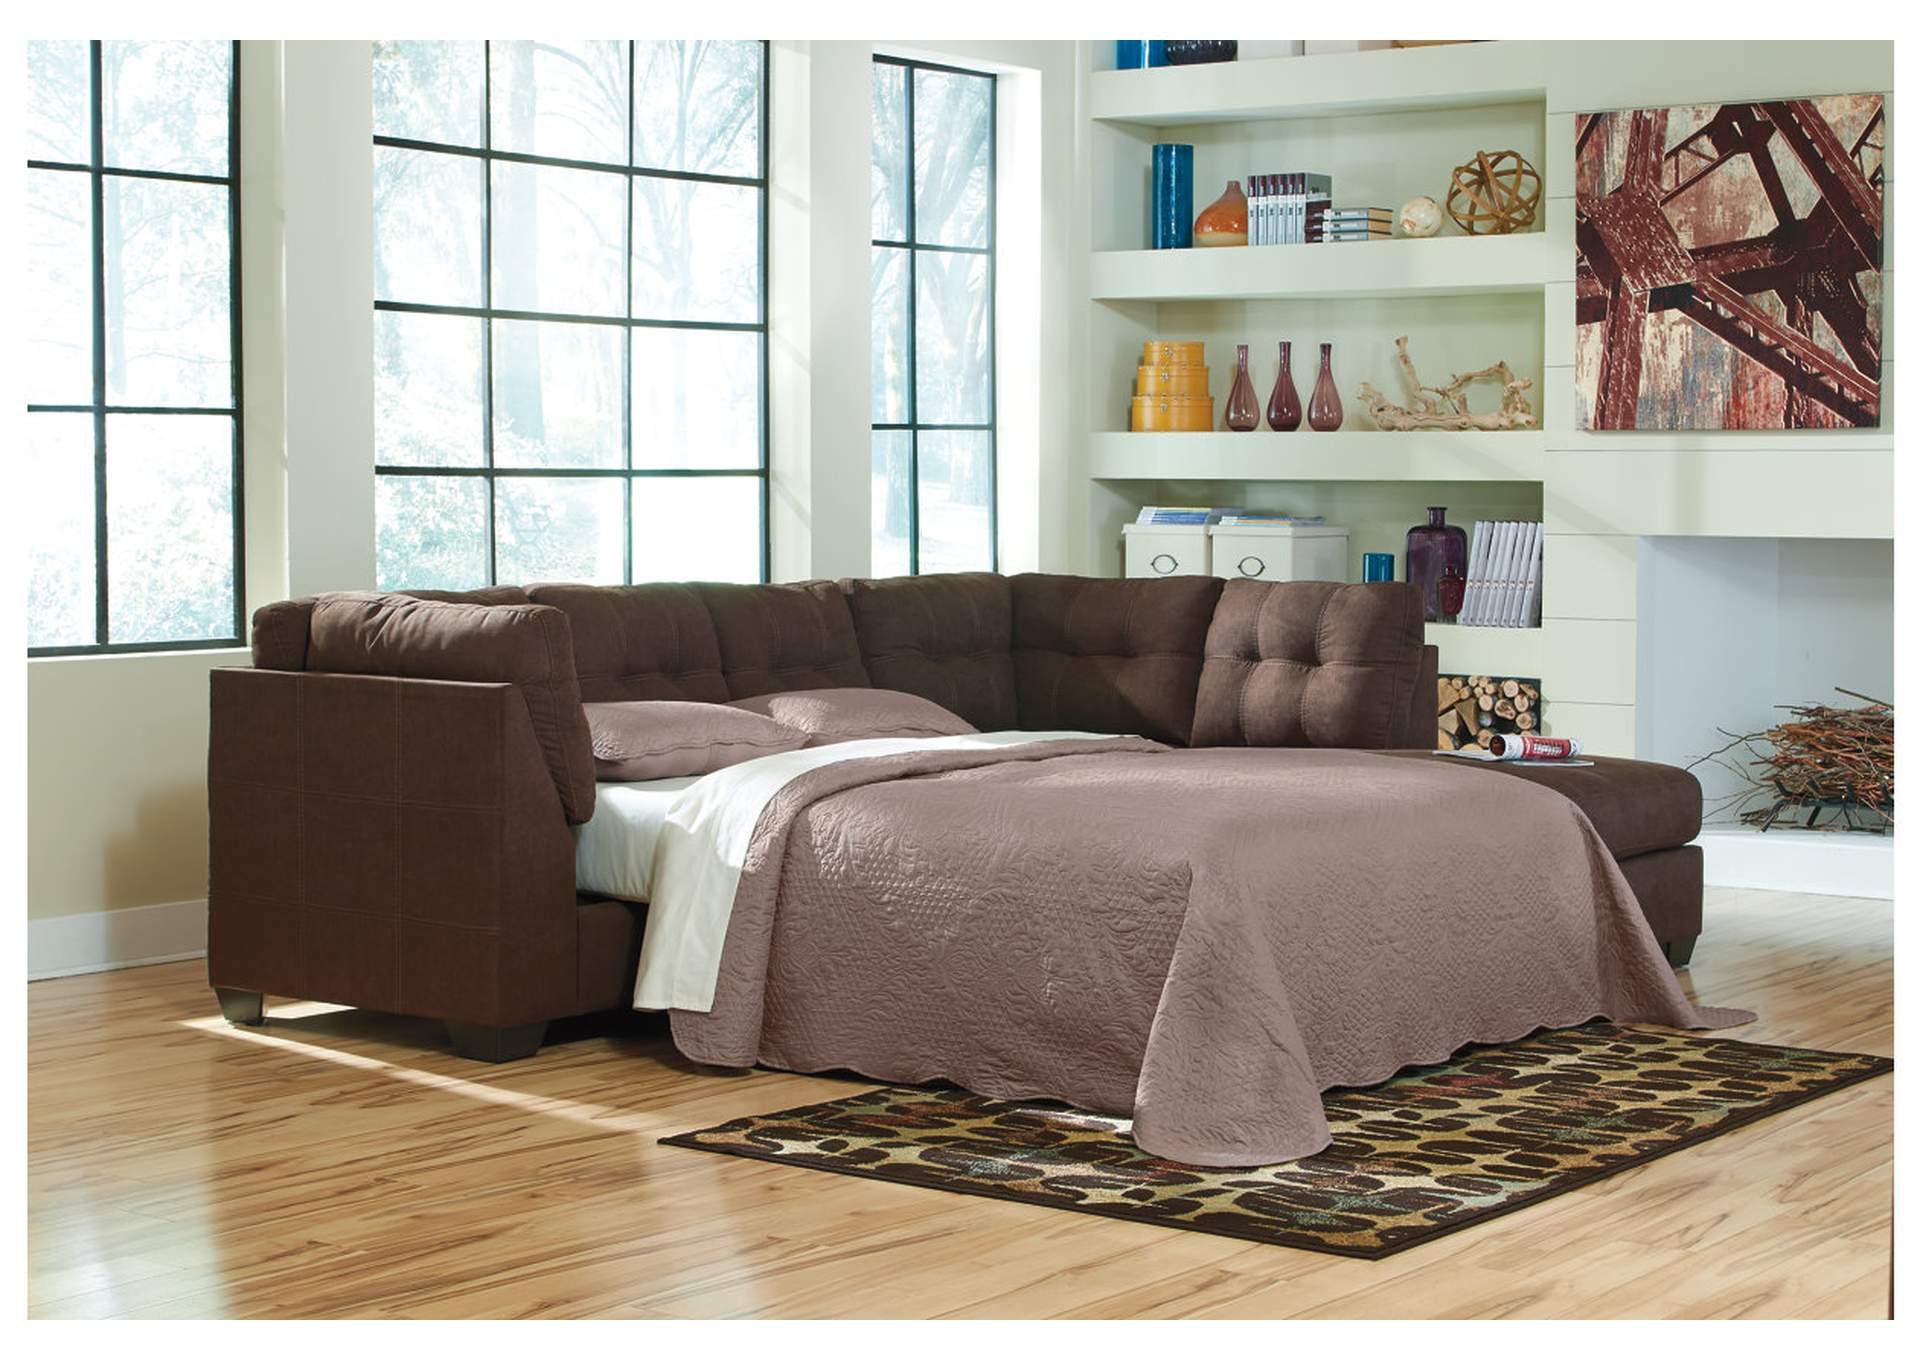 Maier Walnut Right Arm Facing Chaise End Sleeper Sectional,Benchcraft